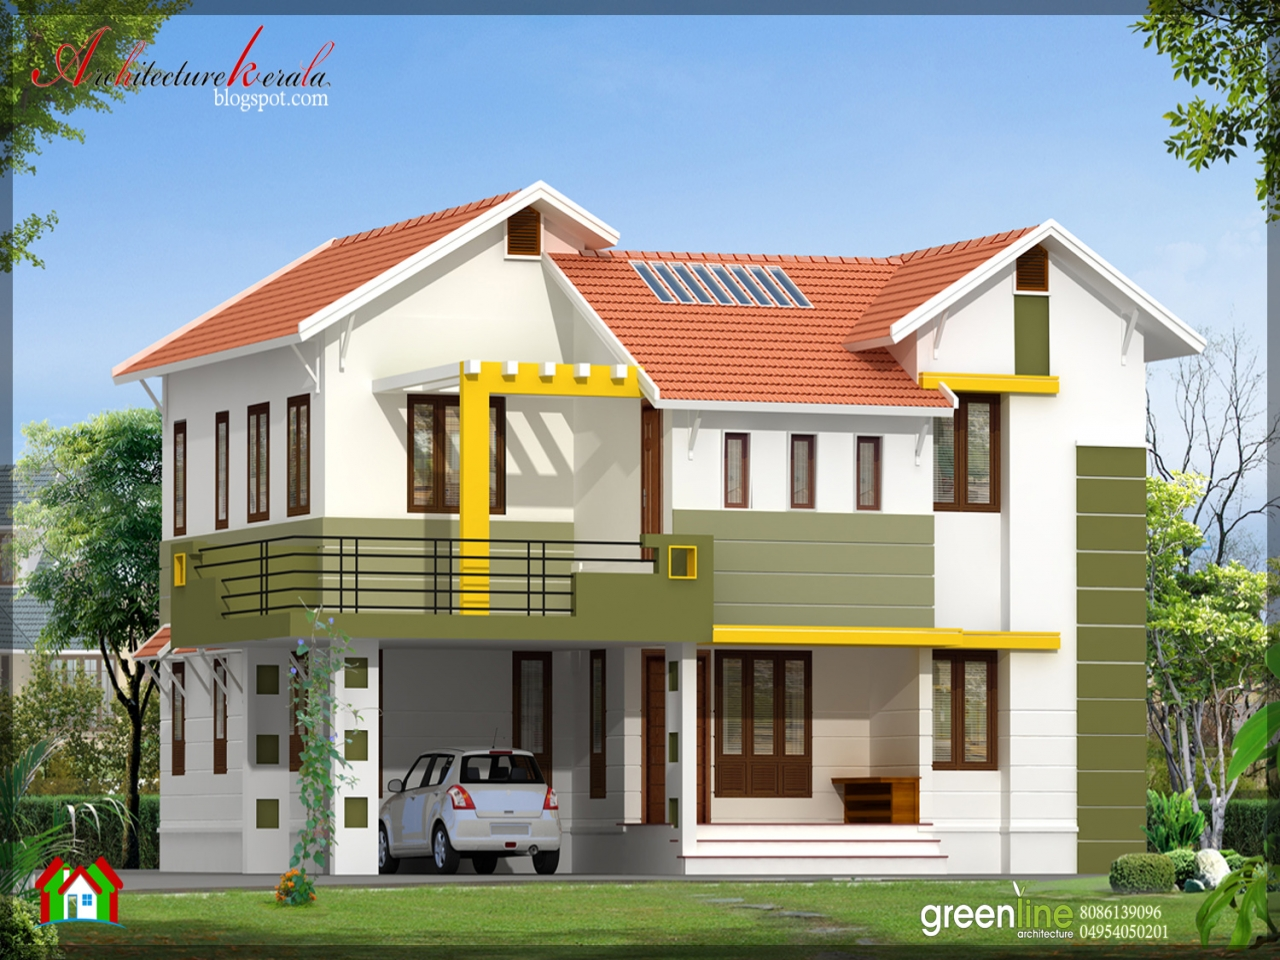 Simple modern house designs simple house design in india for Best simple house designs